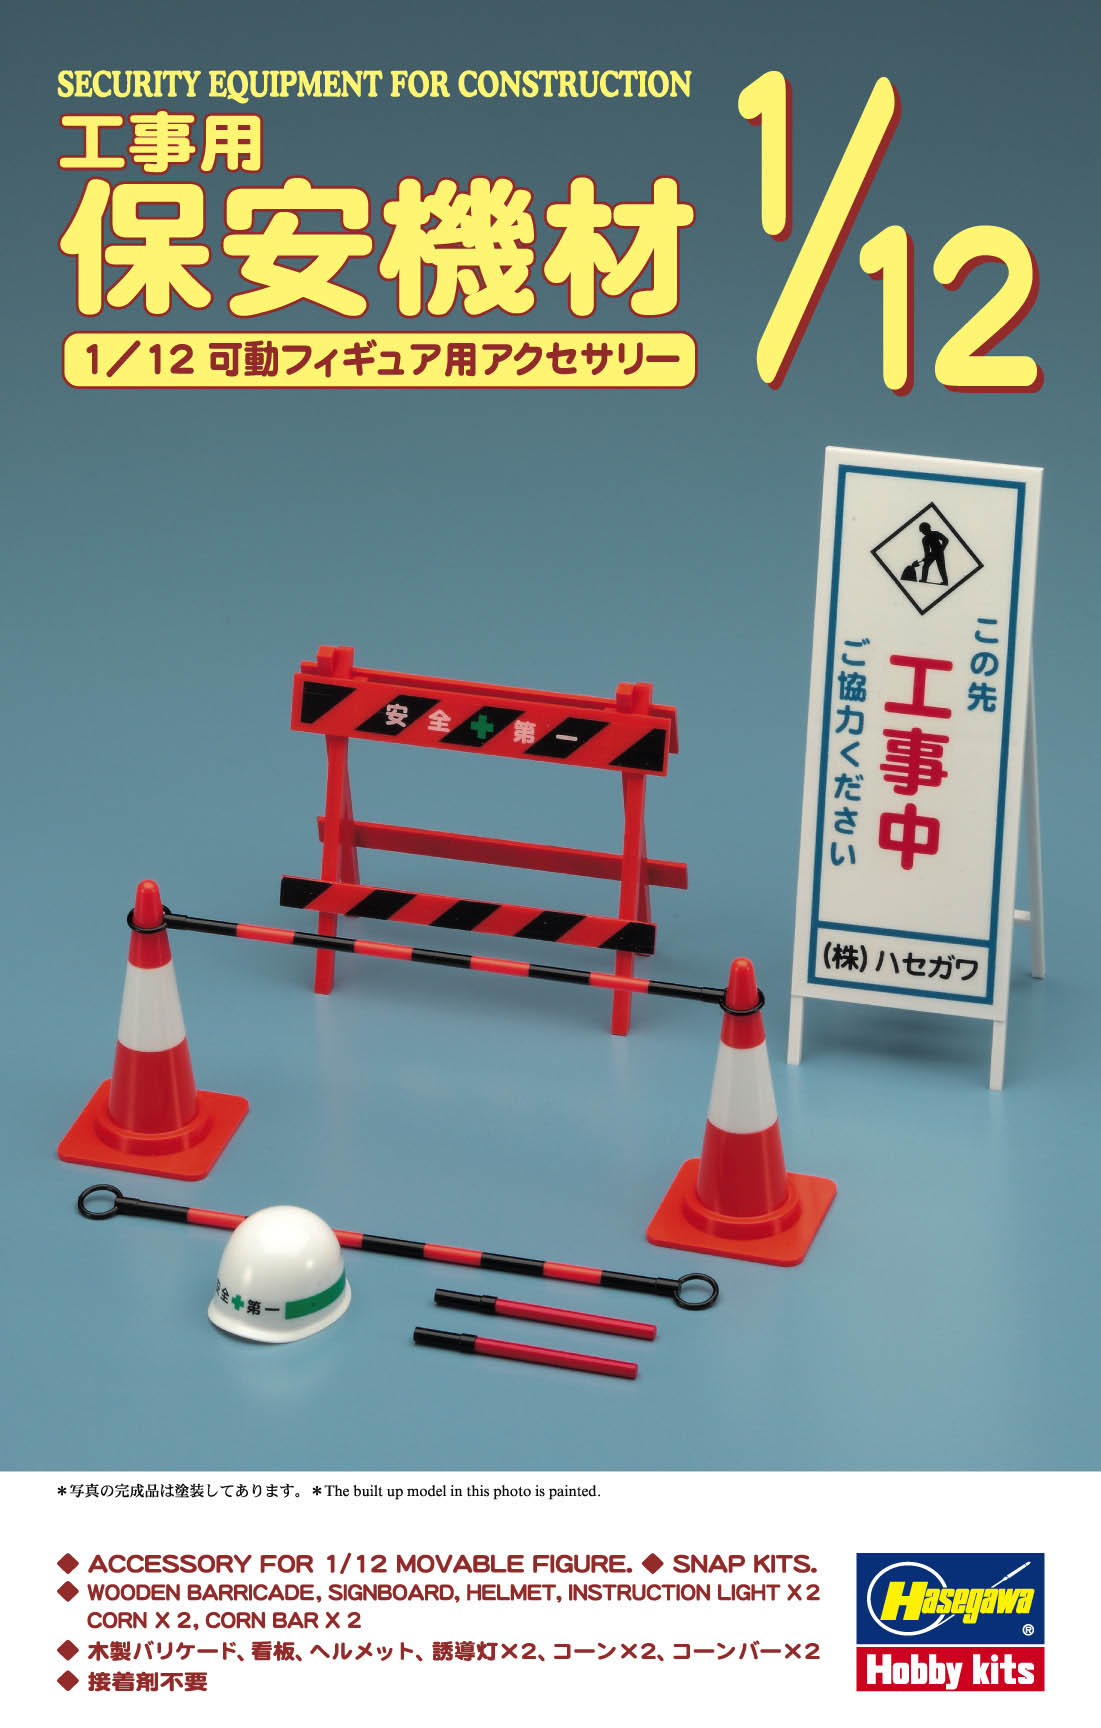 Hasegawa Security Equipment For Construction FA08